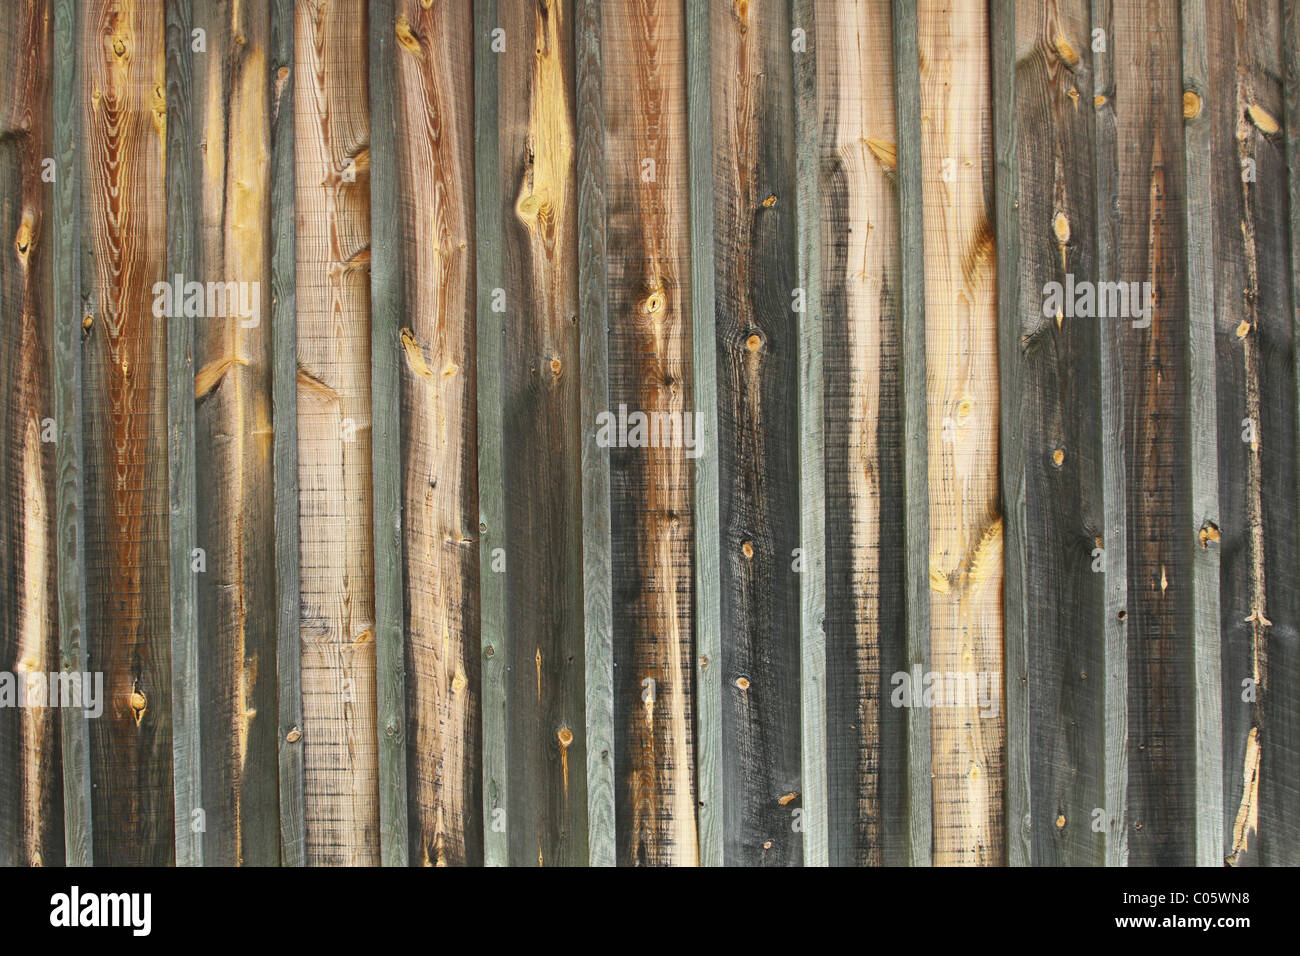 Wood Barn Siding Texture. Board siding with wood strips covering the joints. - Stock Image